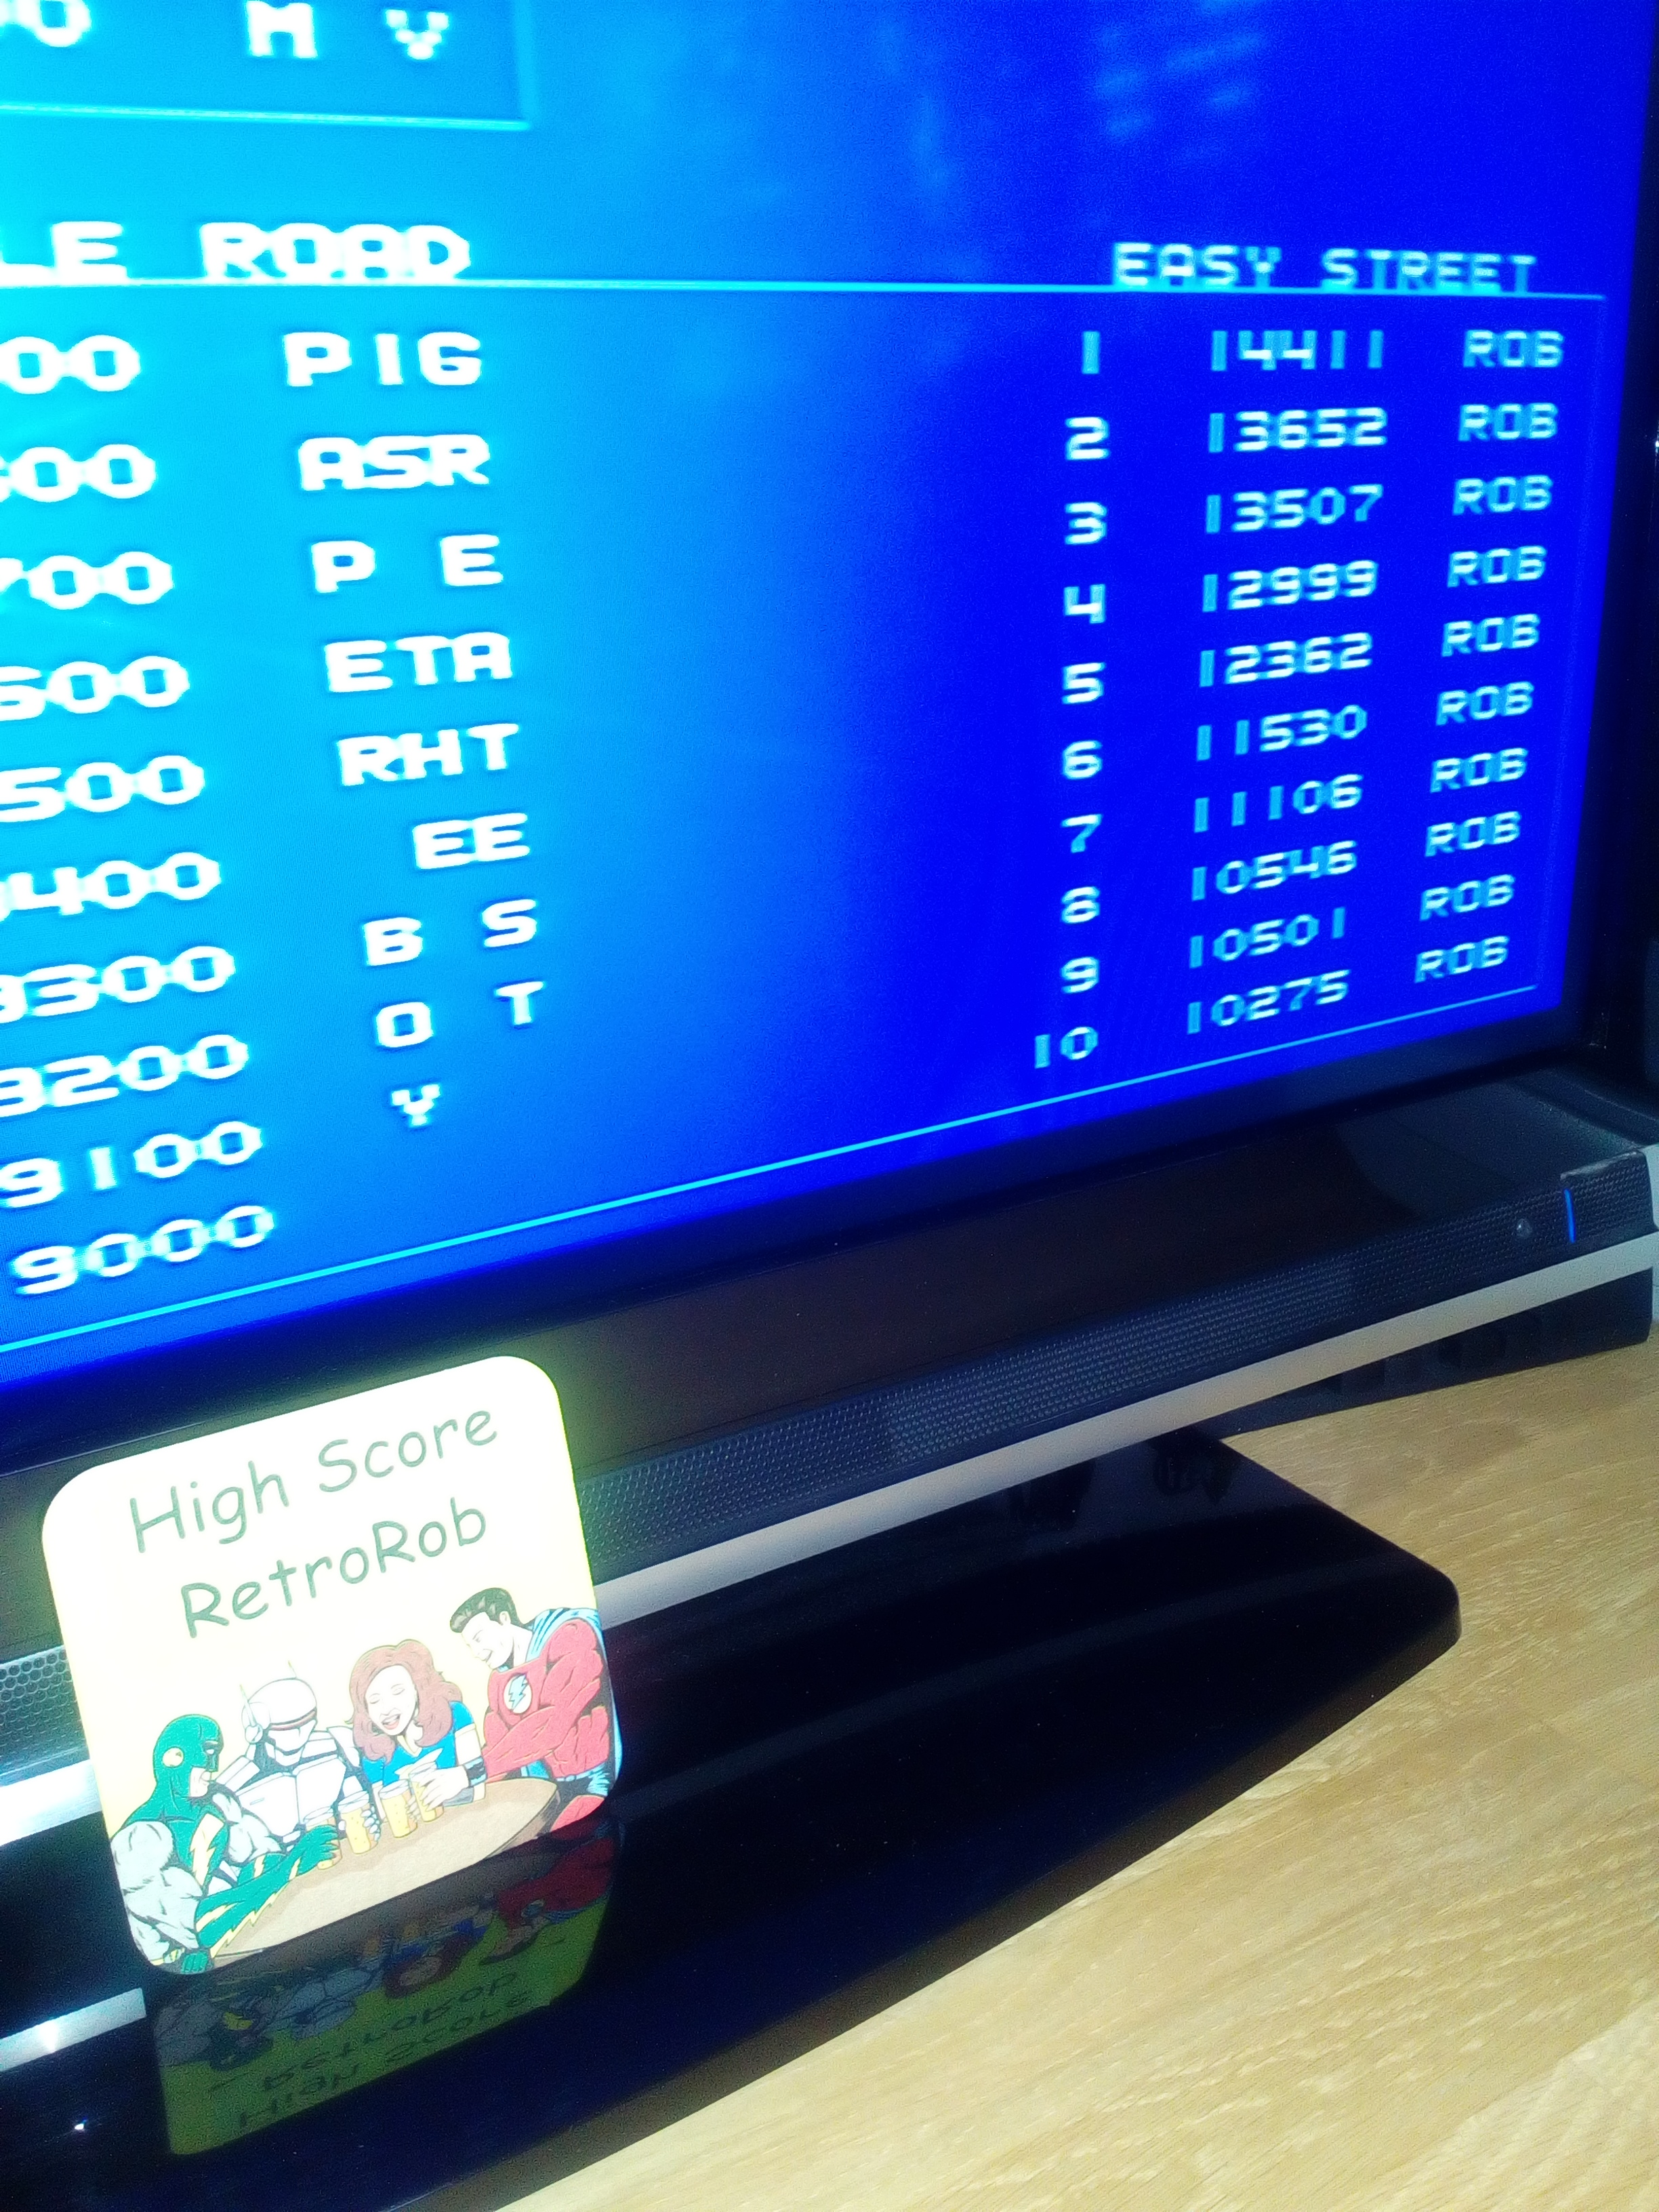 Midway Arcade Treasures: Paperboy 14,411 points